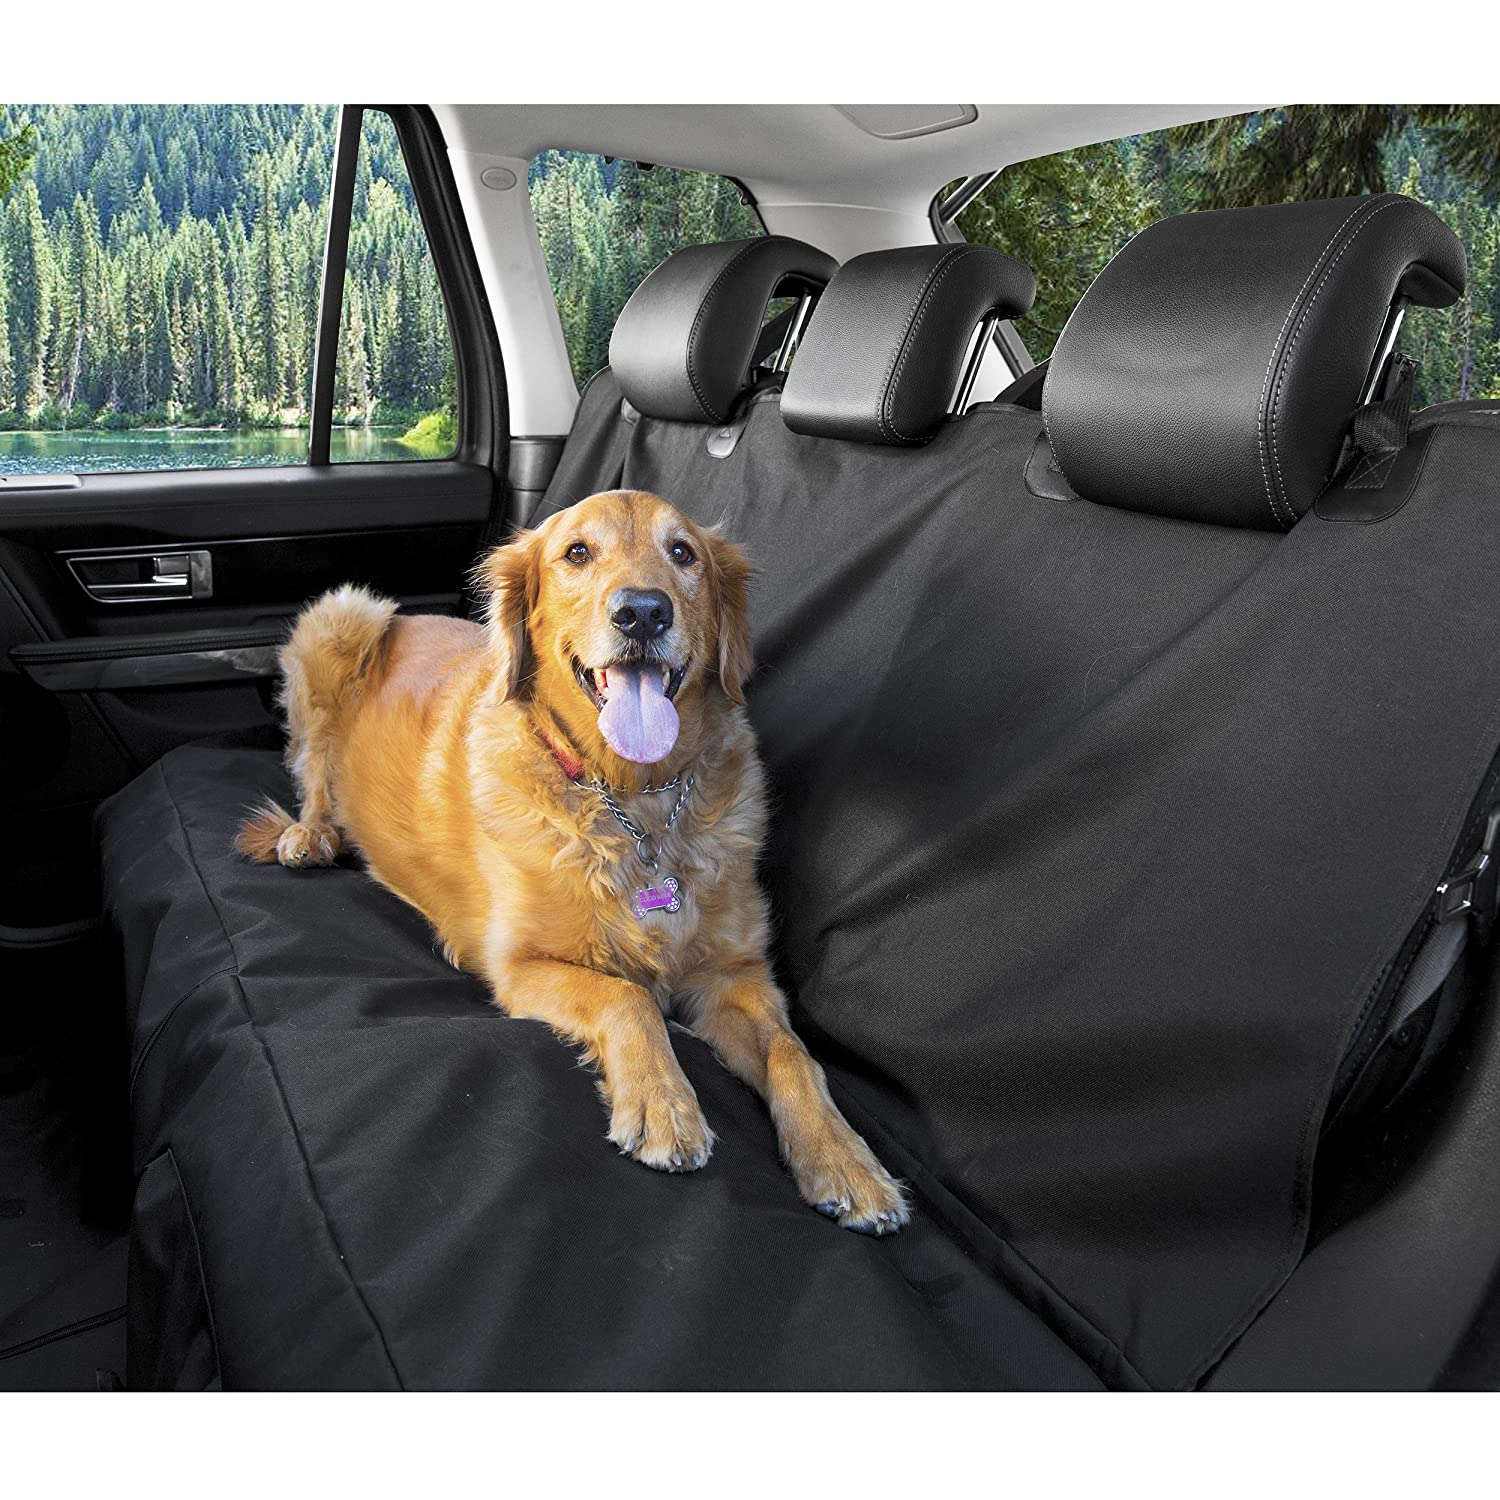 visble accessories car barrier hammock dog mesh transporte with new cover pin pet seat